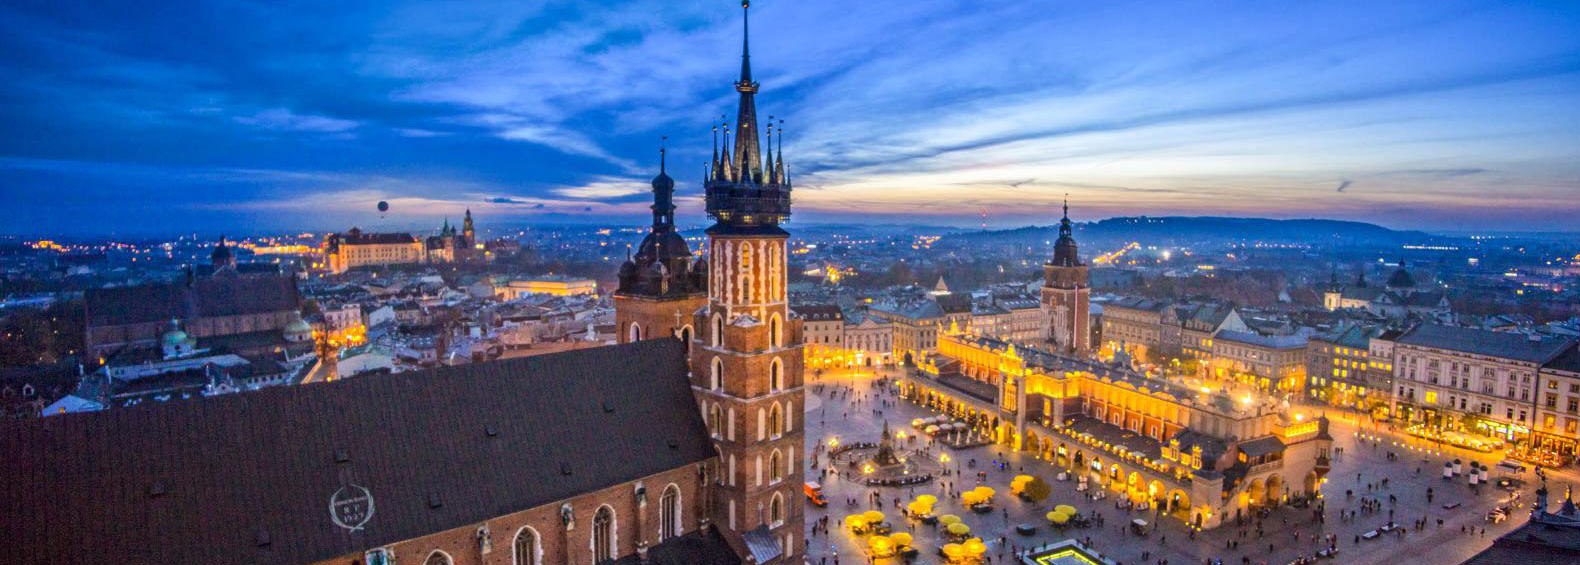 Poland Vacation Rentals - Come Visit Poland